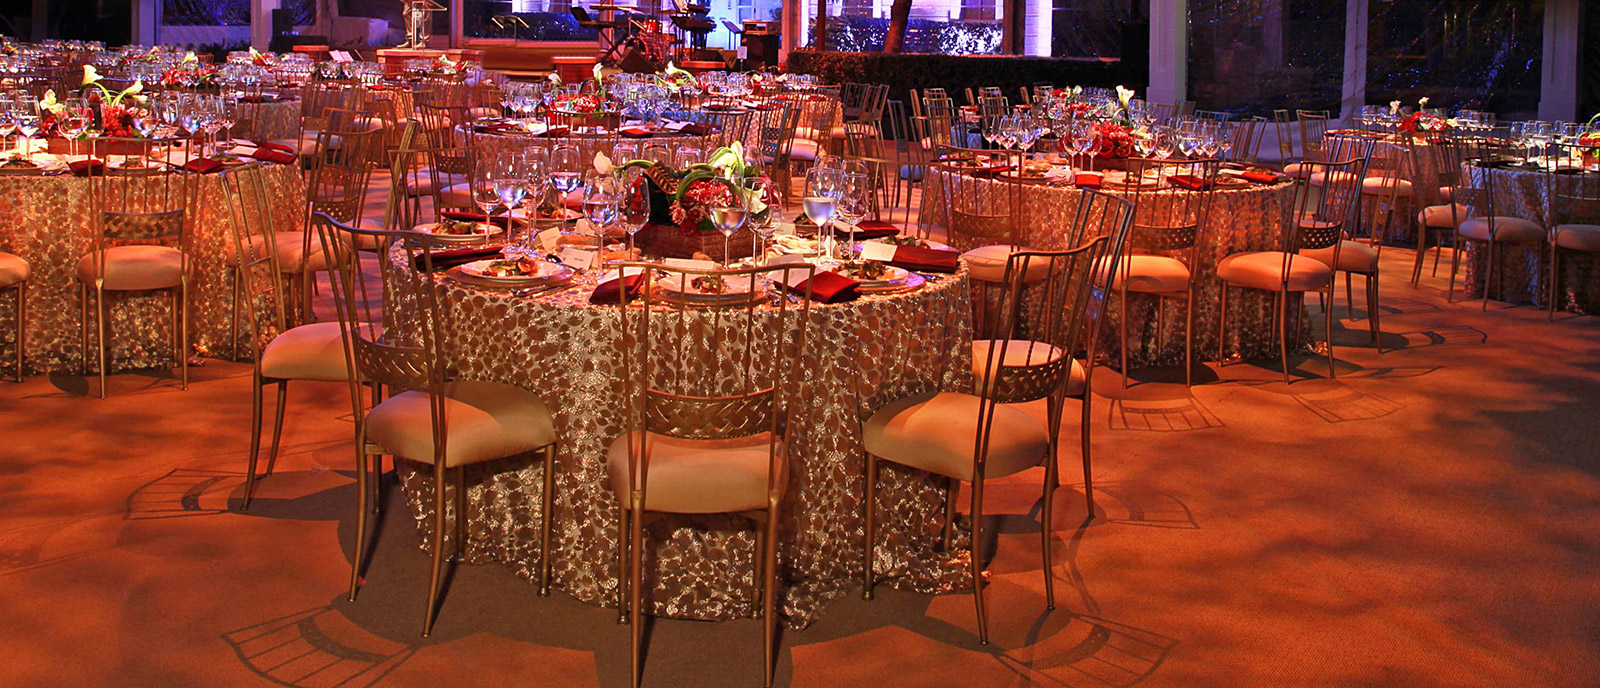 Chiavari chairs rental chicago chairs for - Elegant Chairs And Tables For Gala Events